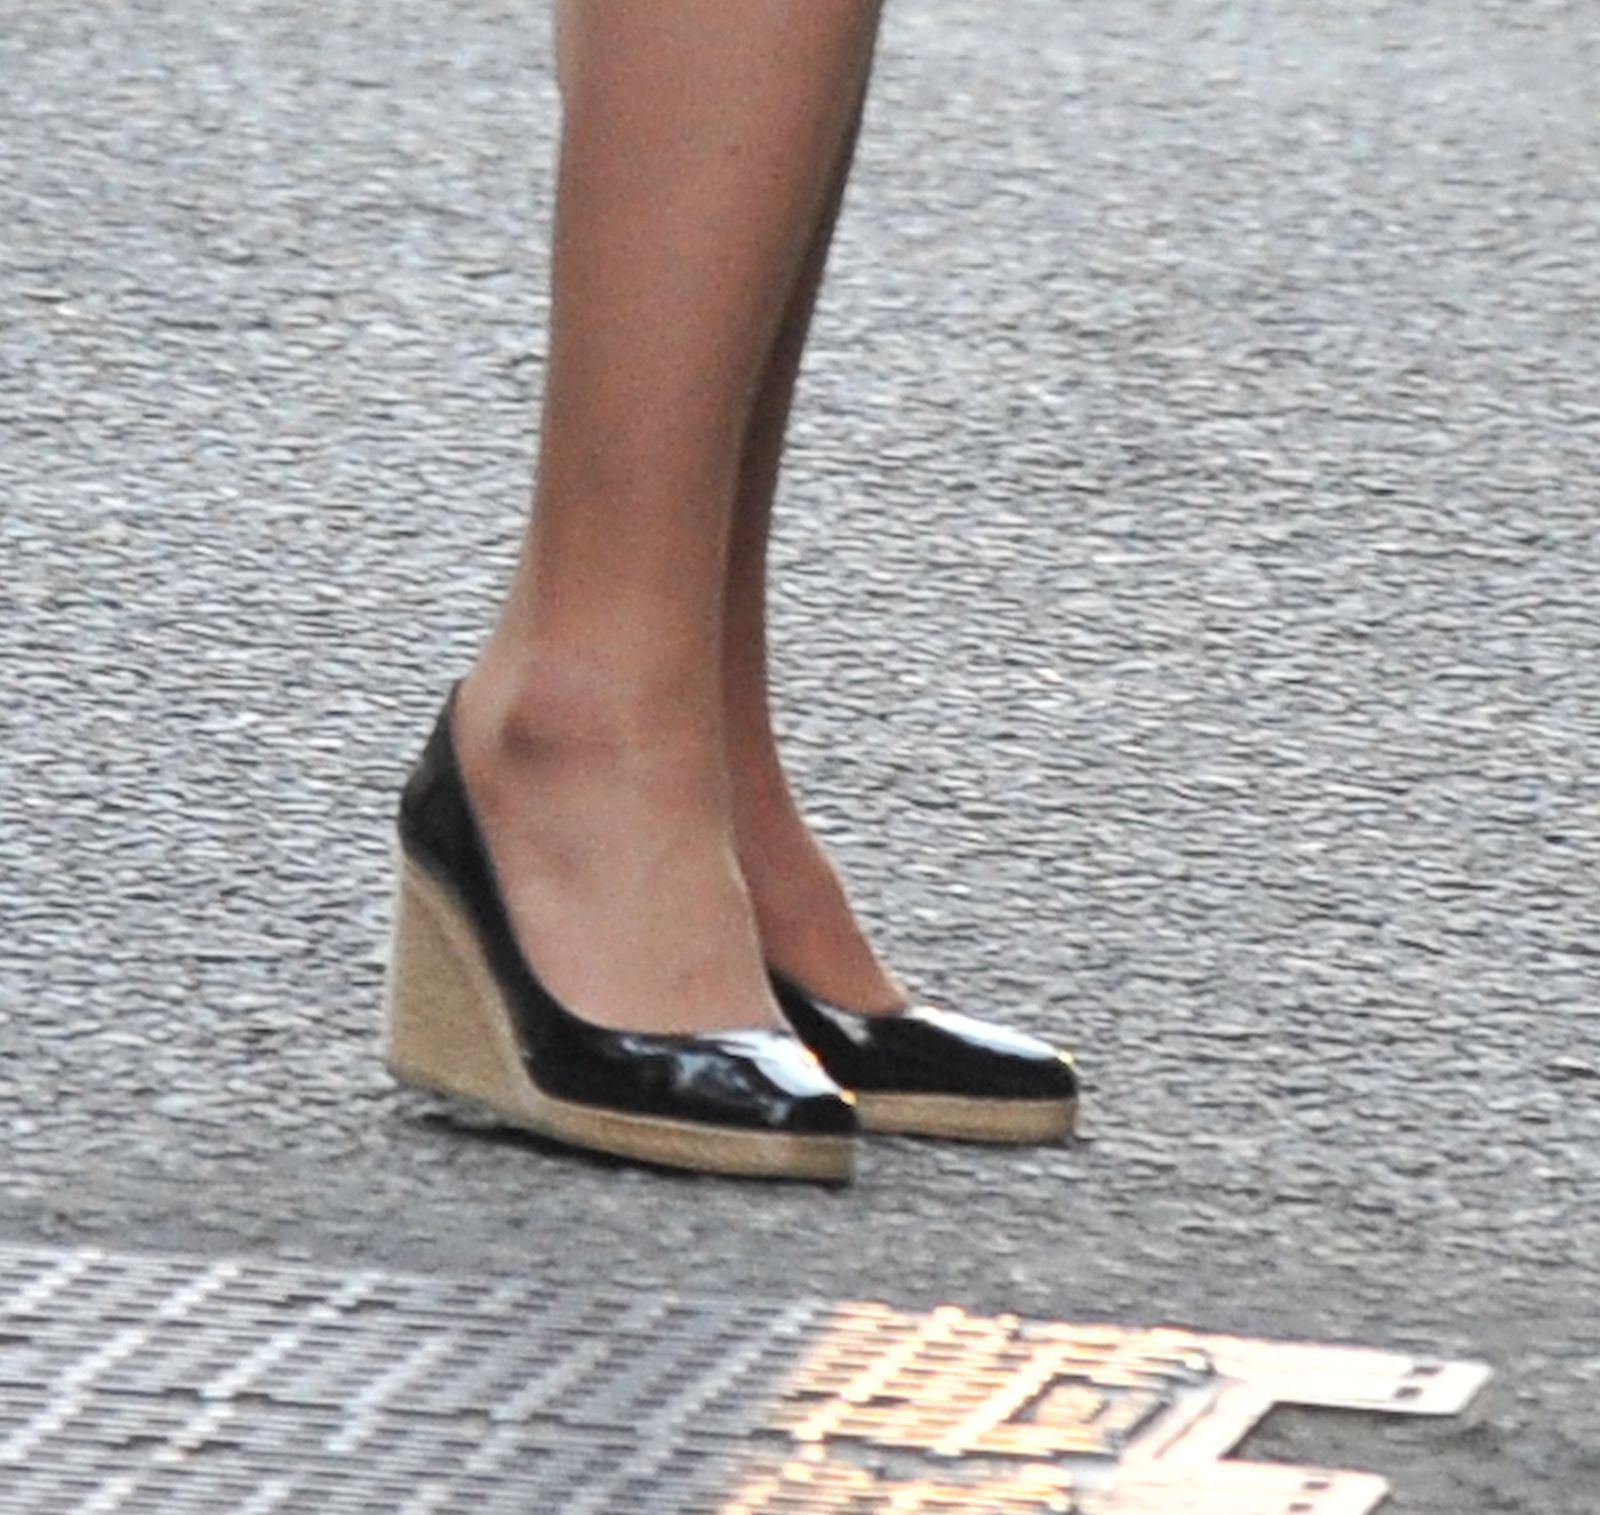 a49355e1f7e Kate Middleton just wore the chicest, comfiest party shoes you've ...